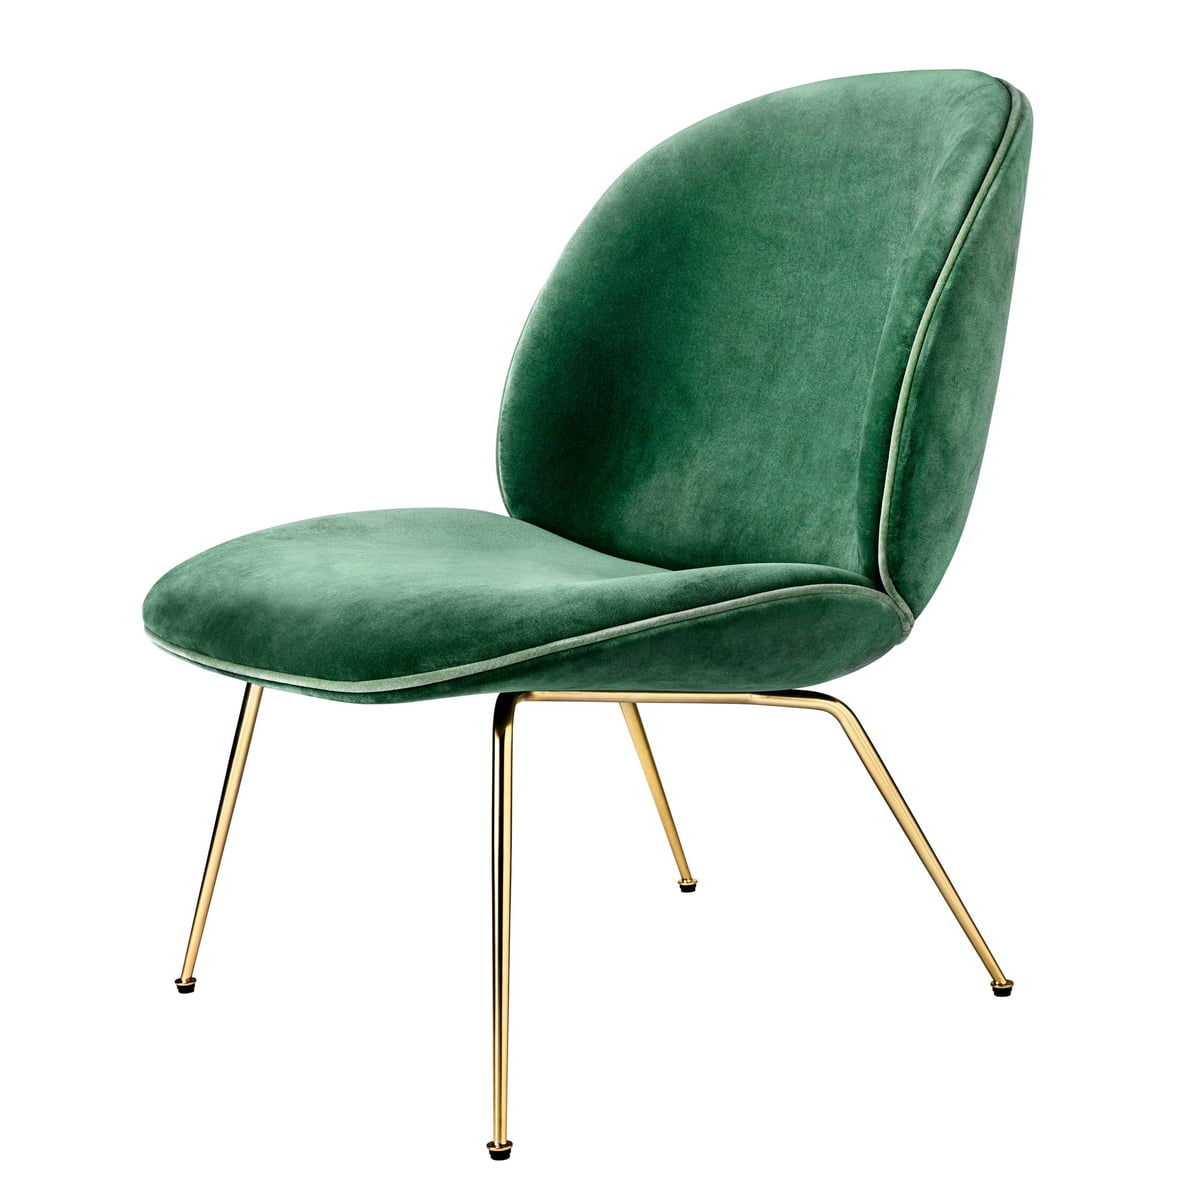 Charmant Beetle Lounge Chair, Conic Base, Brass / Velvet (green) By Gubi